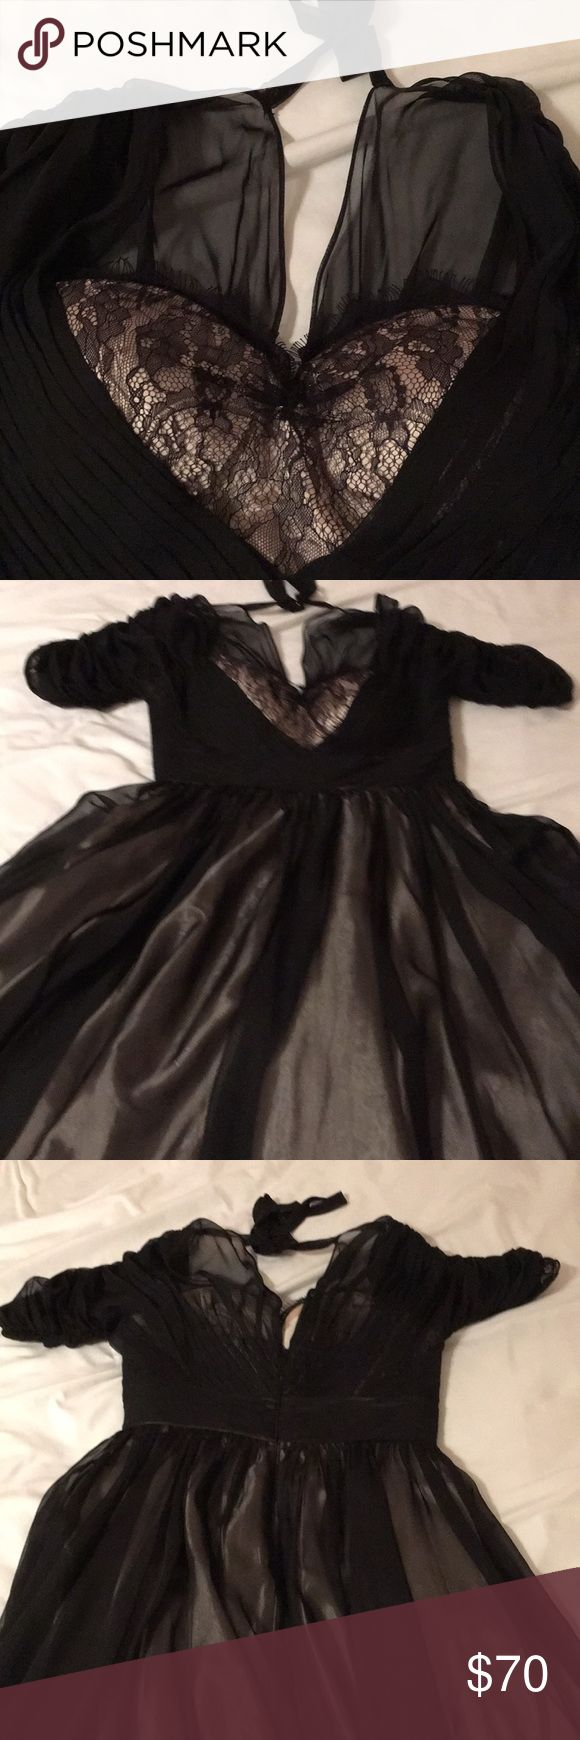 NWT Tempest Storm dress Gorgeous black dress with sheer overlay and sheer short sleeves. Full skirt fully lined. Material under is silky gold. Beautiful. Never worn. Tempest Storm Dresses